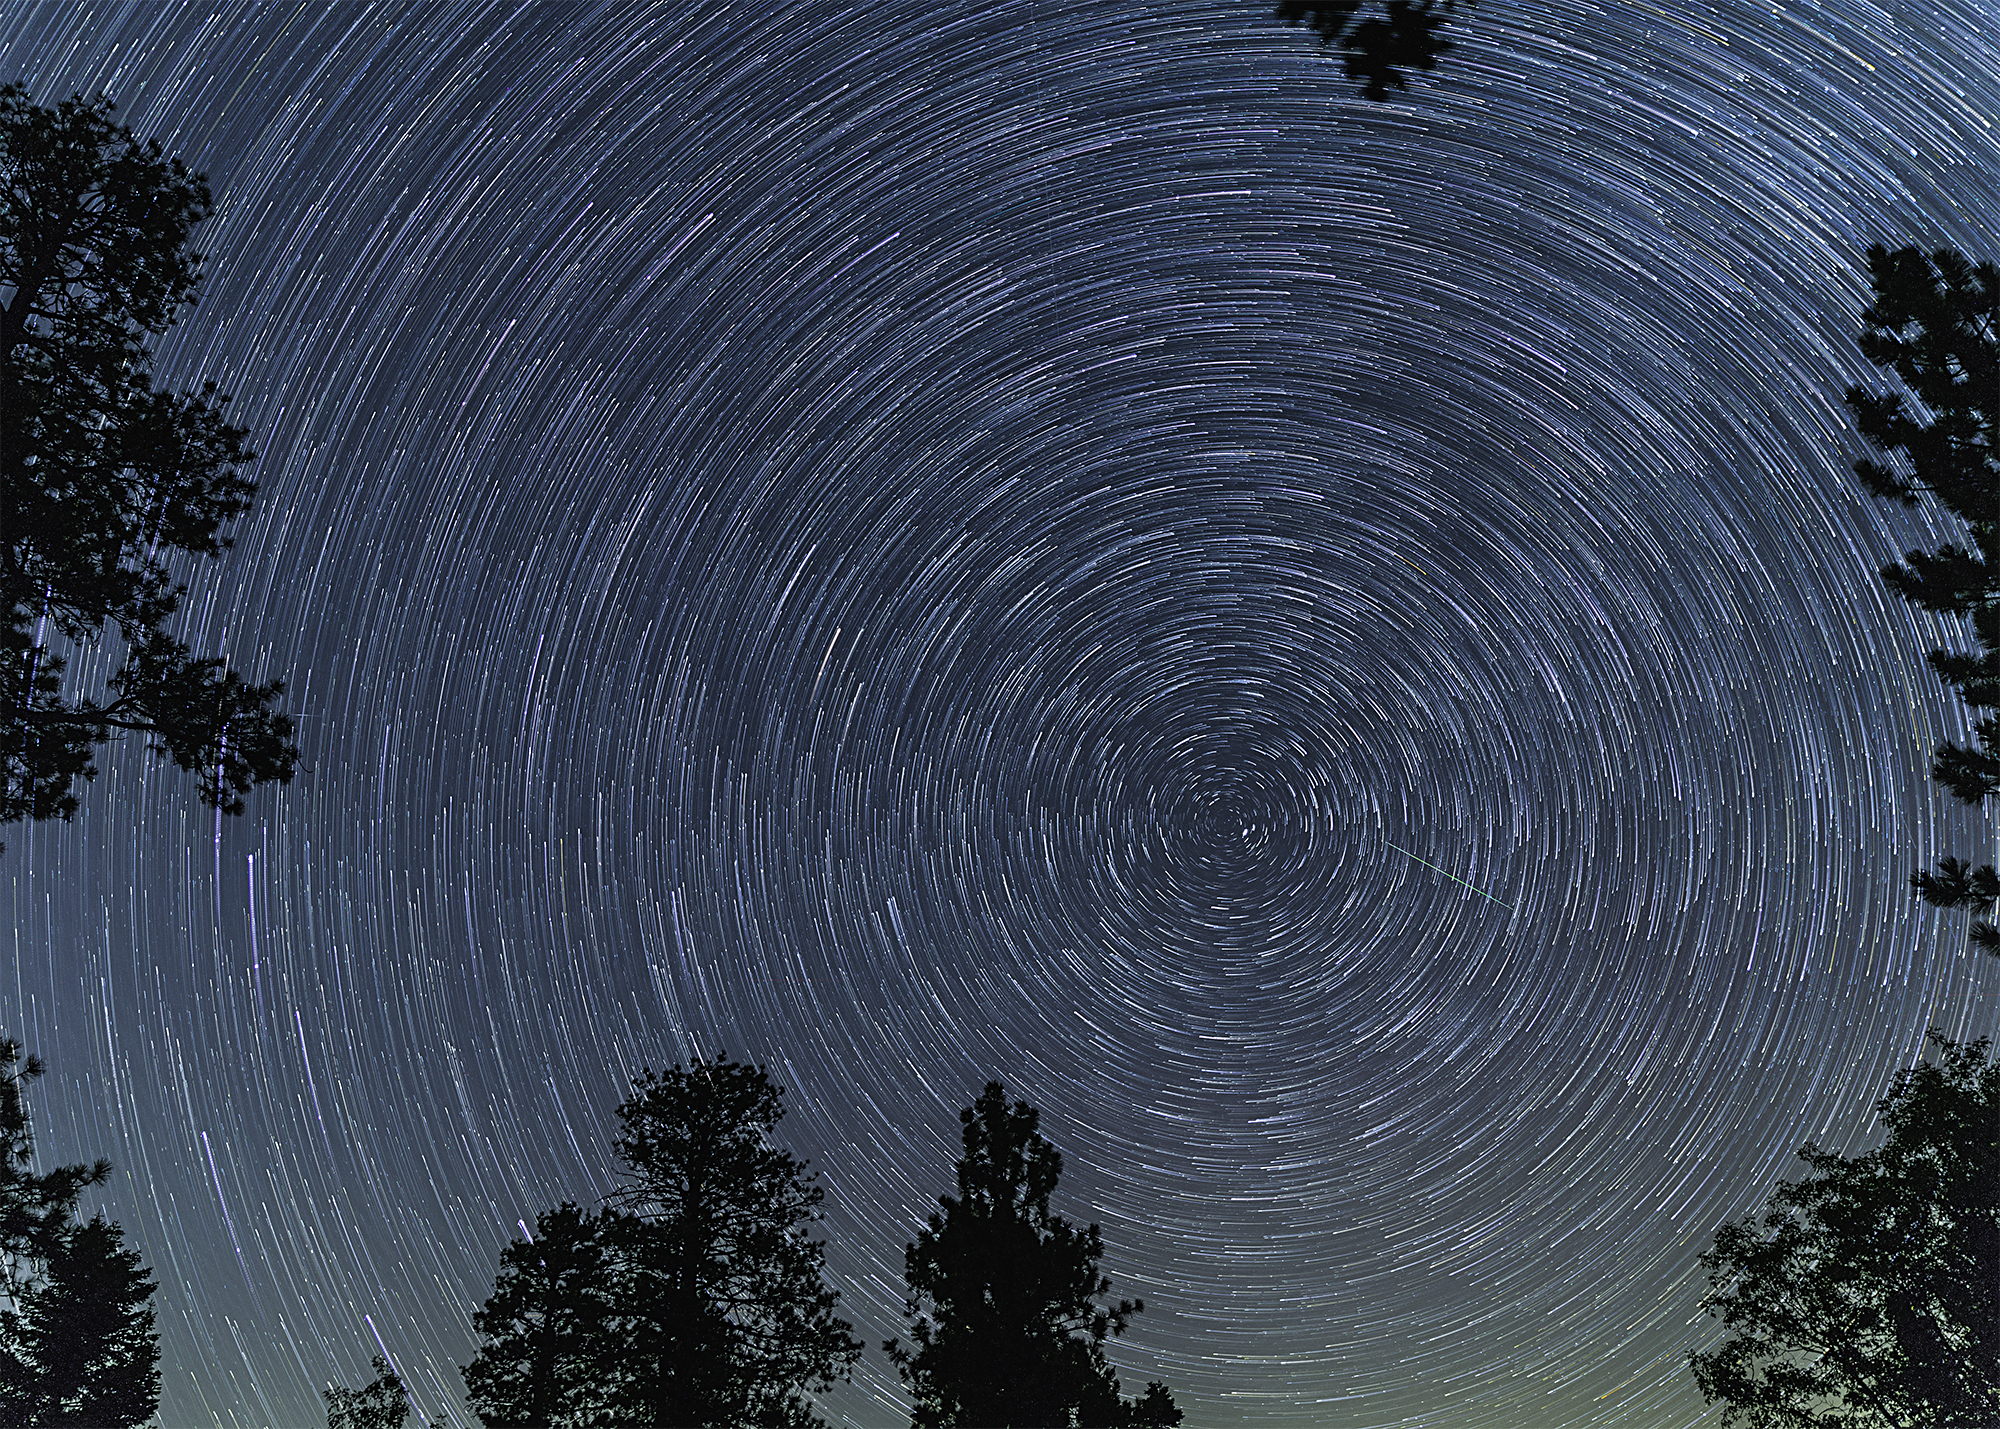 star trails 8.12 resized.jpg